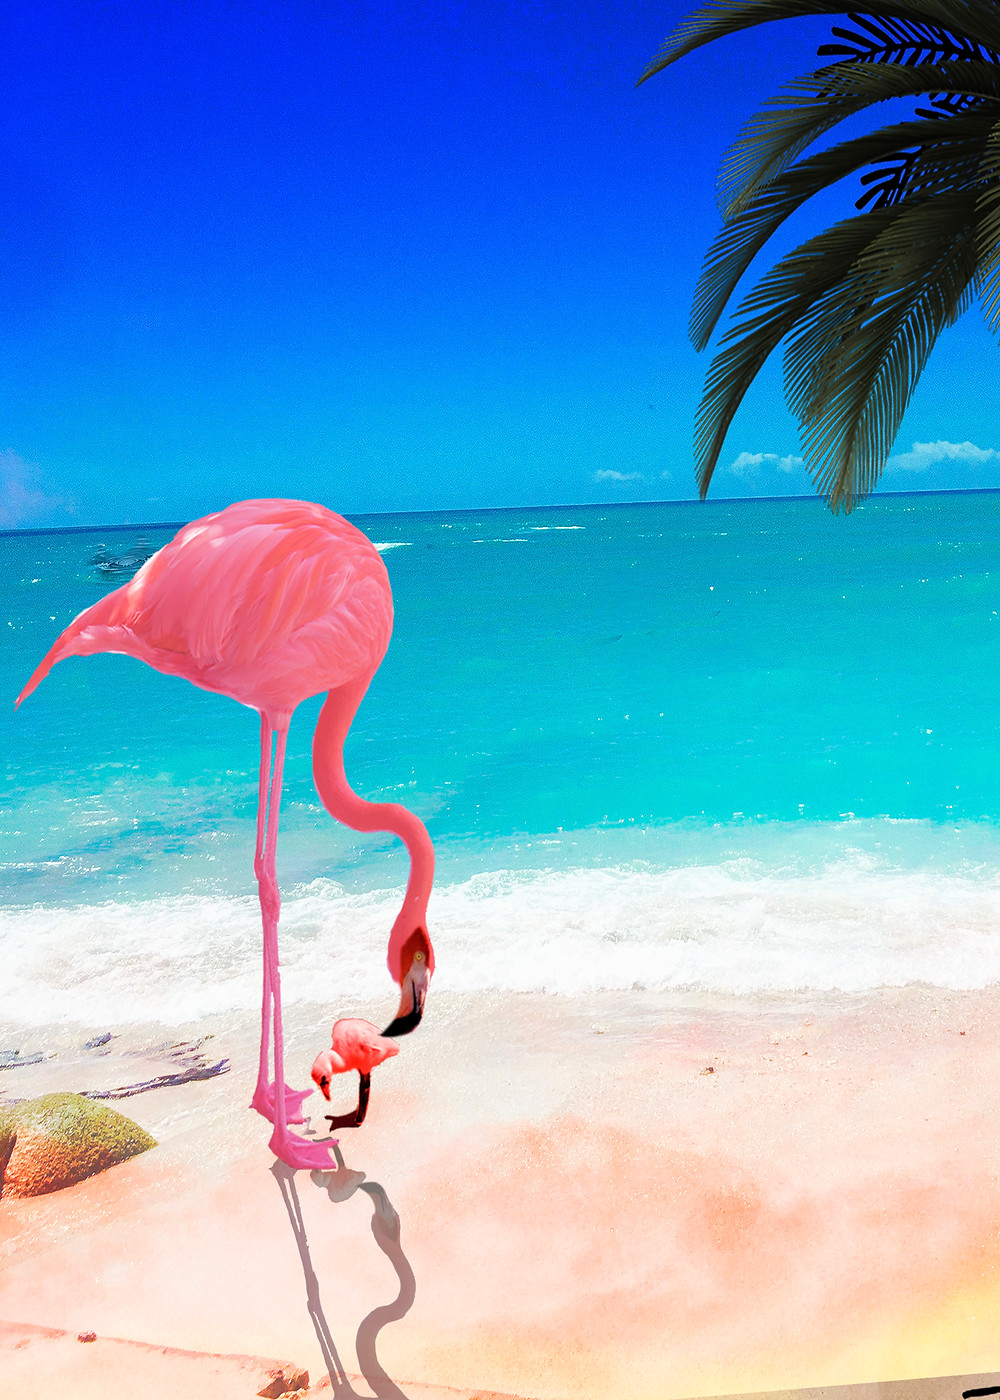 custom flamingo themed stationary and party accessories. zazzlemade